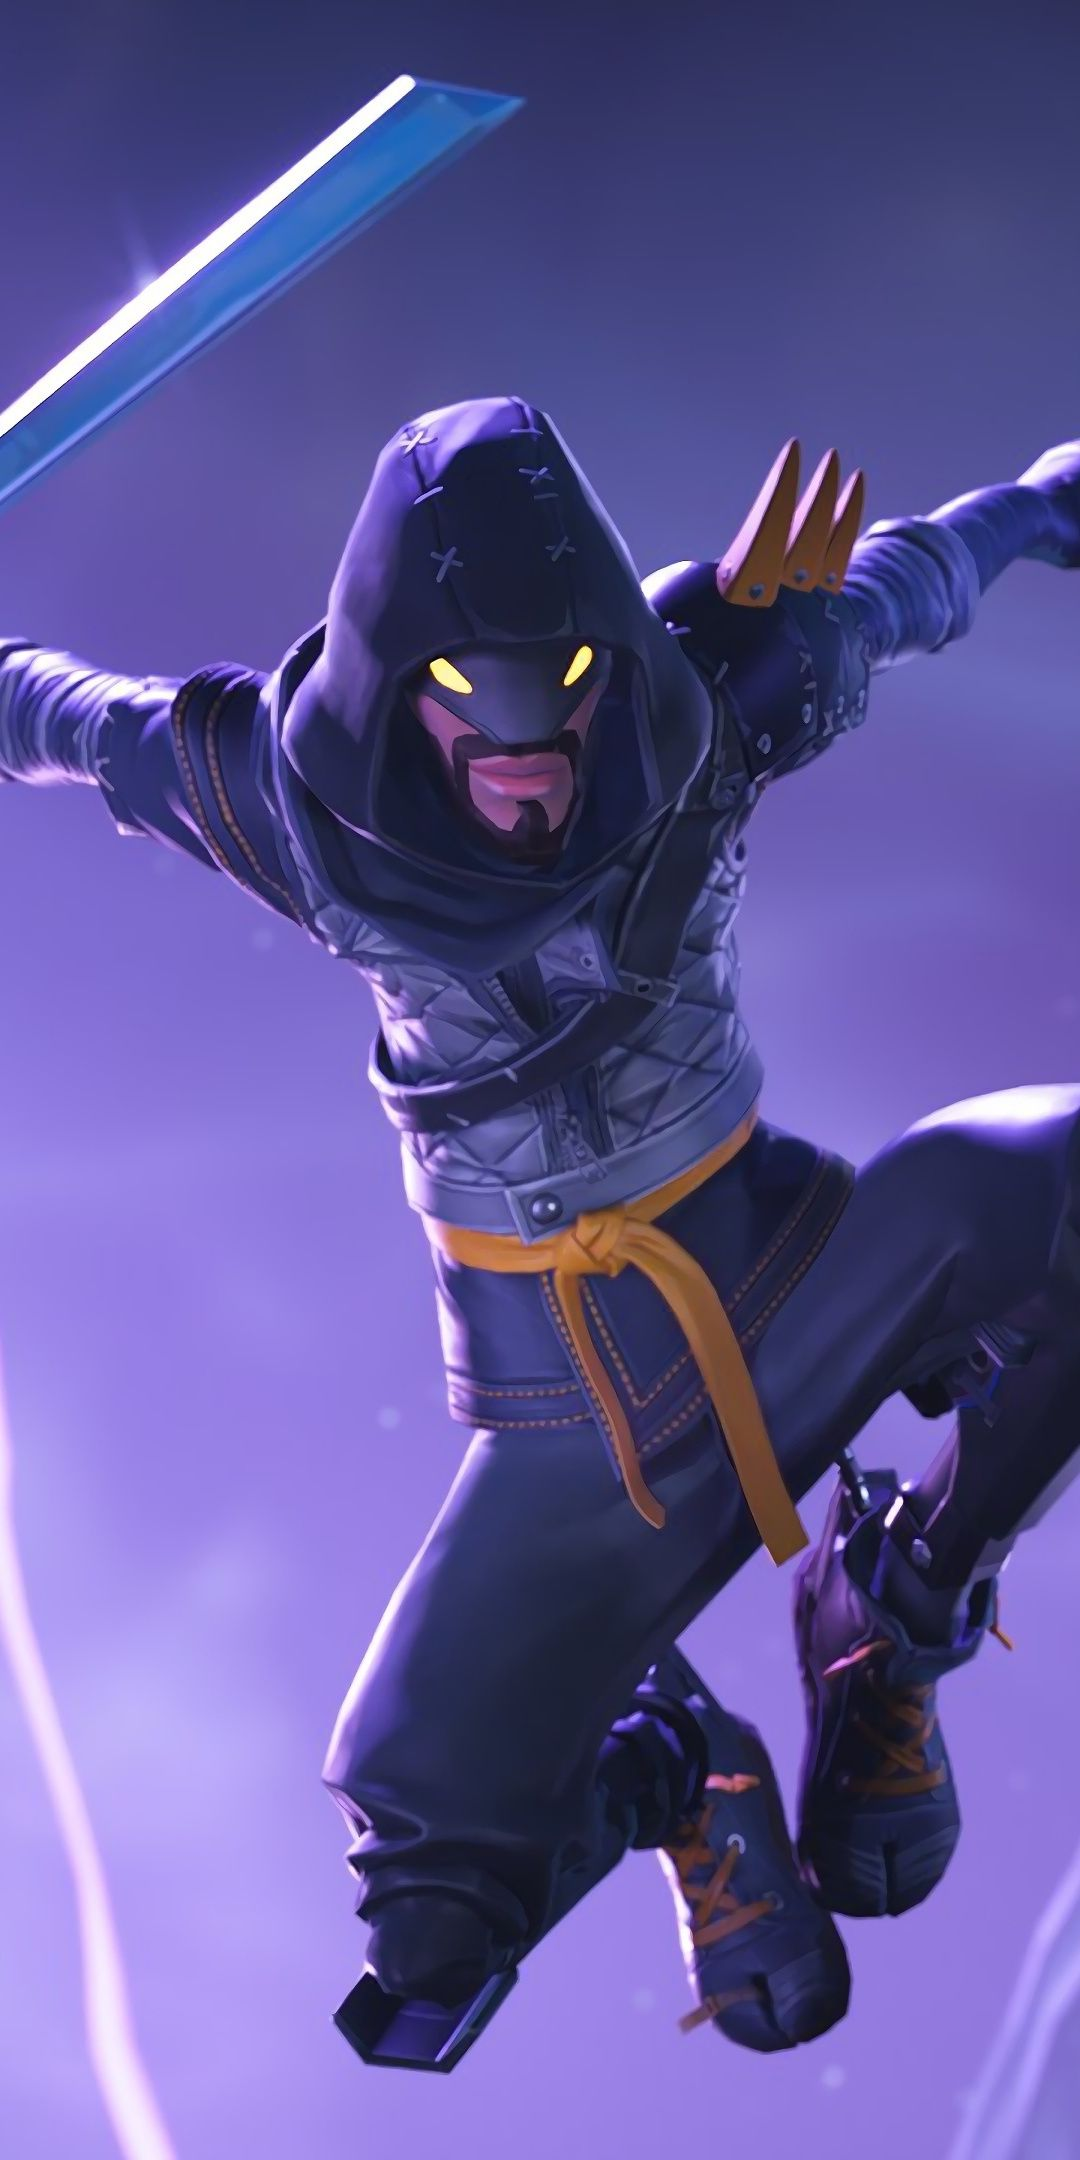 Fortnite Video Game Skin Mythic Cloaked Star Ninja 1080x2160